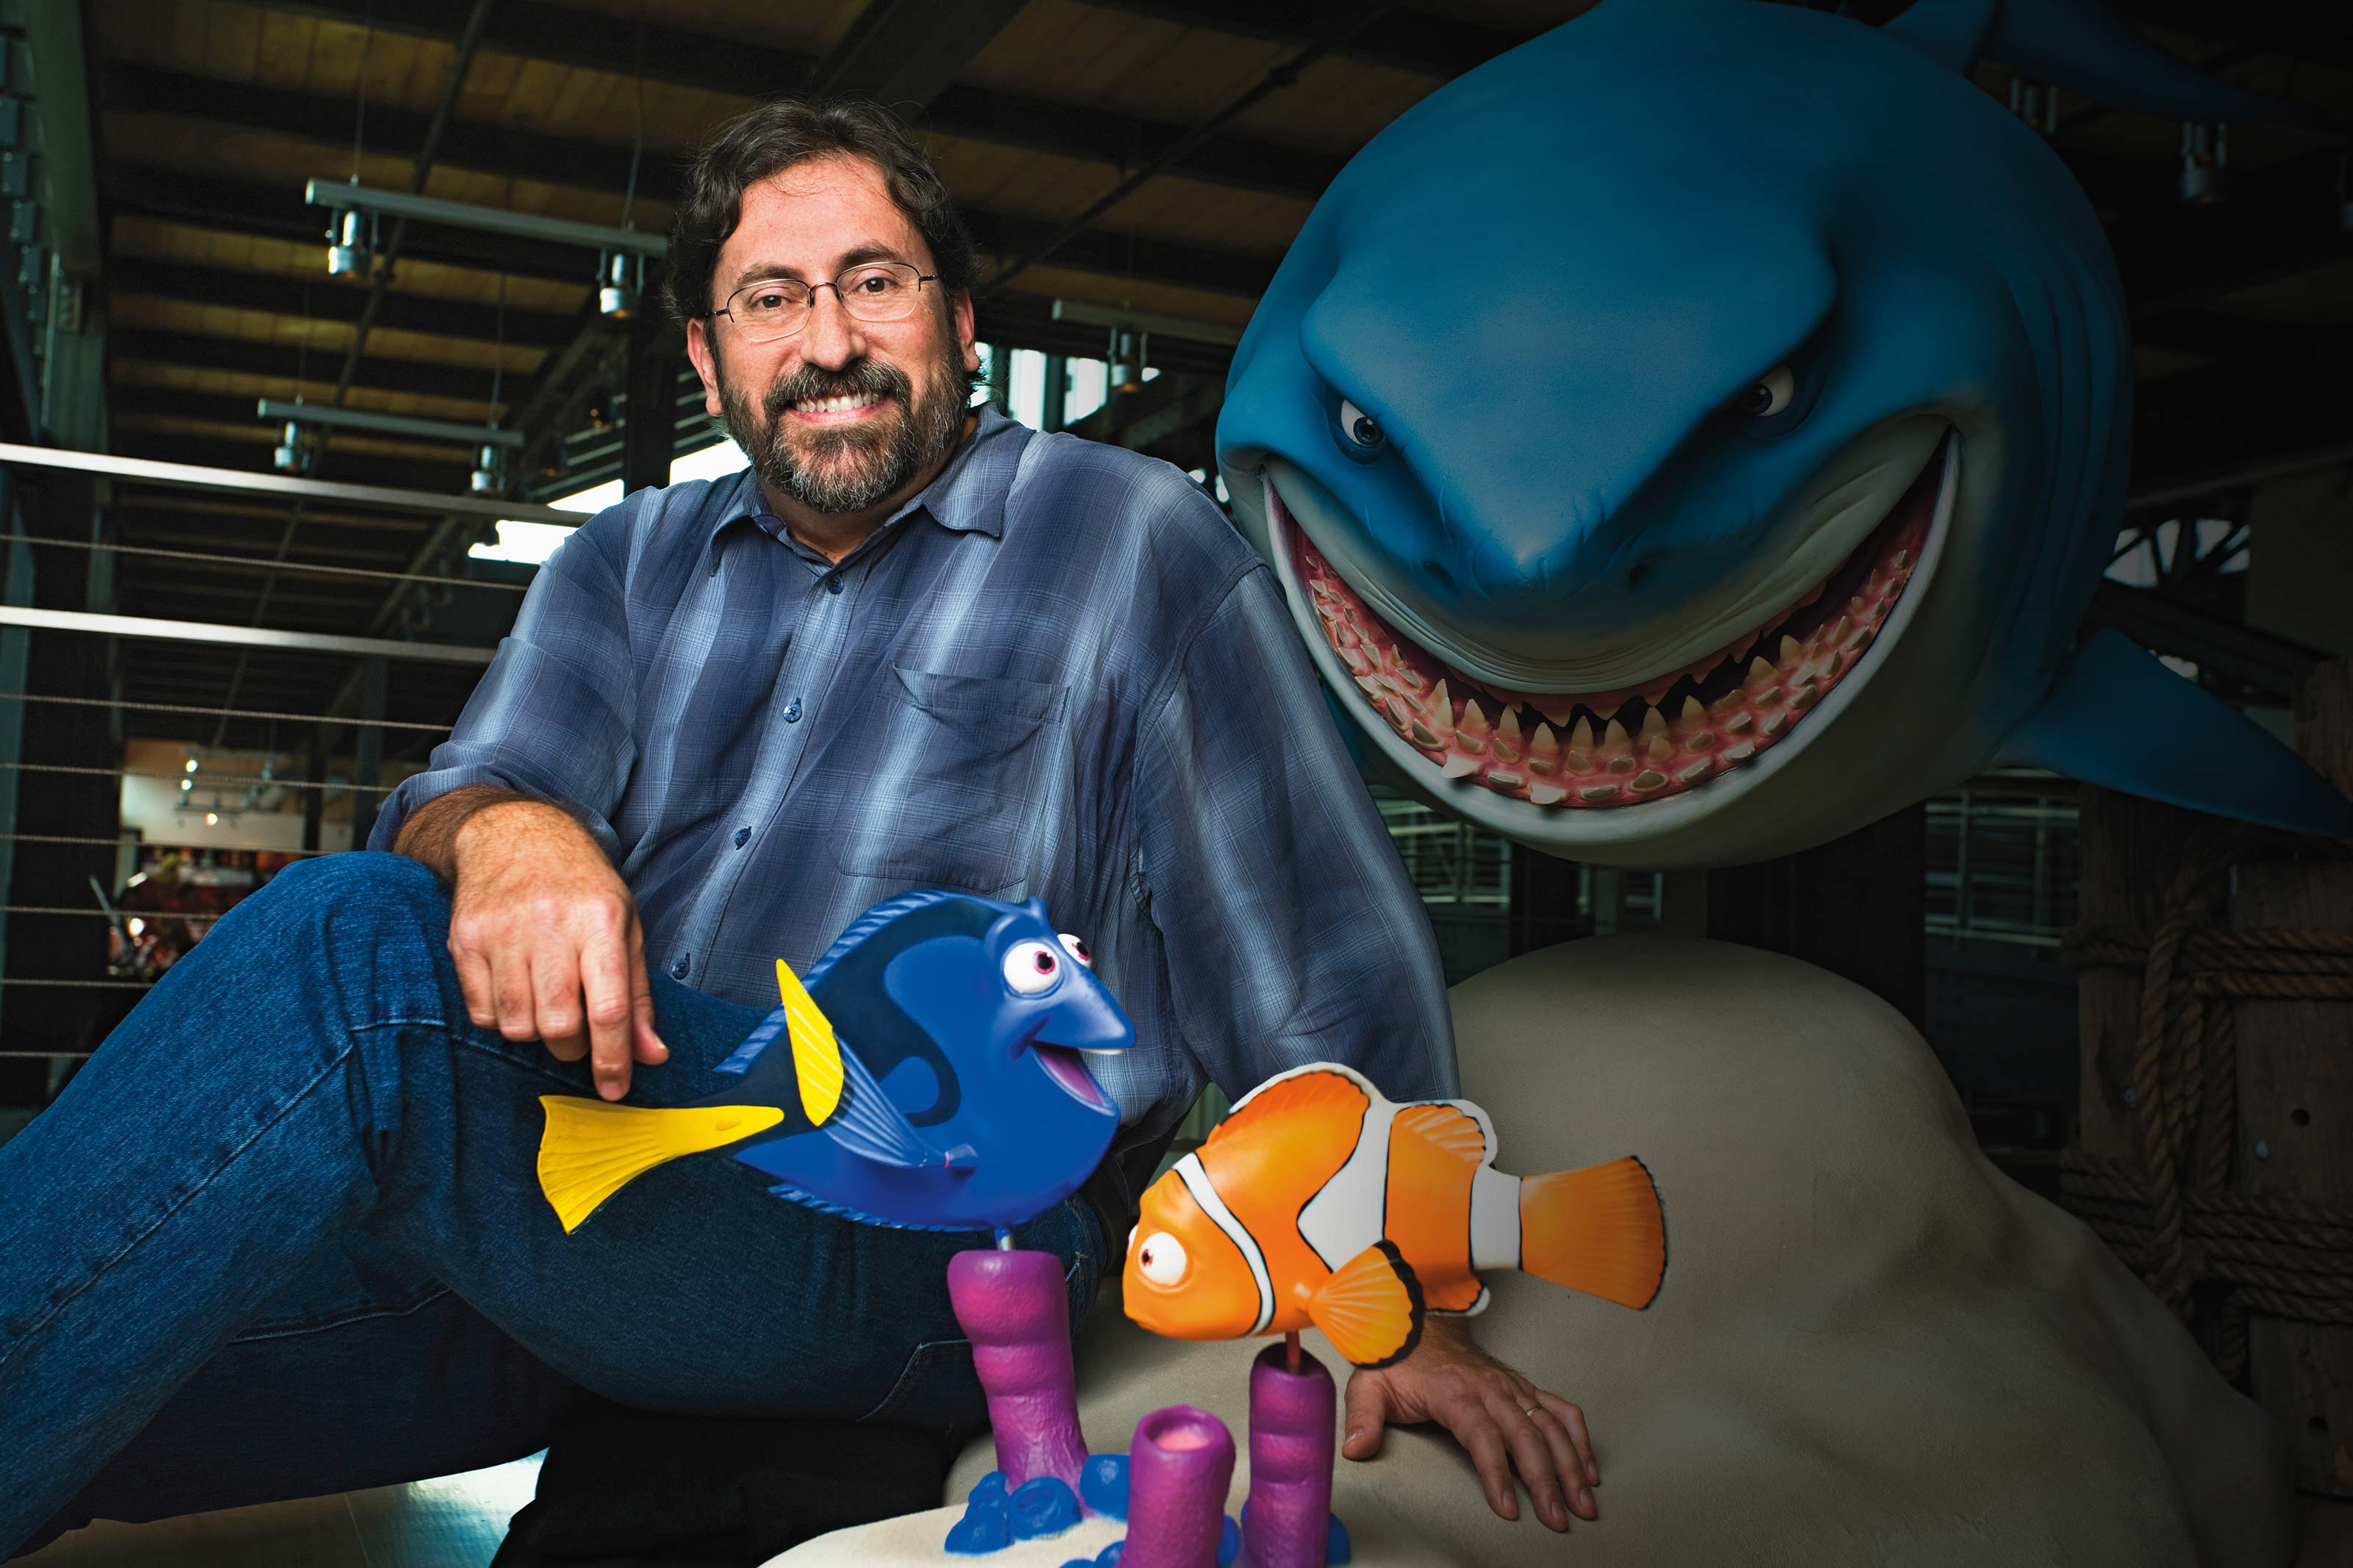 ONU alumnus Bob Peterson of Pixar Animation Studios